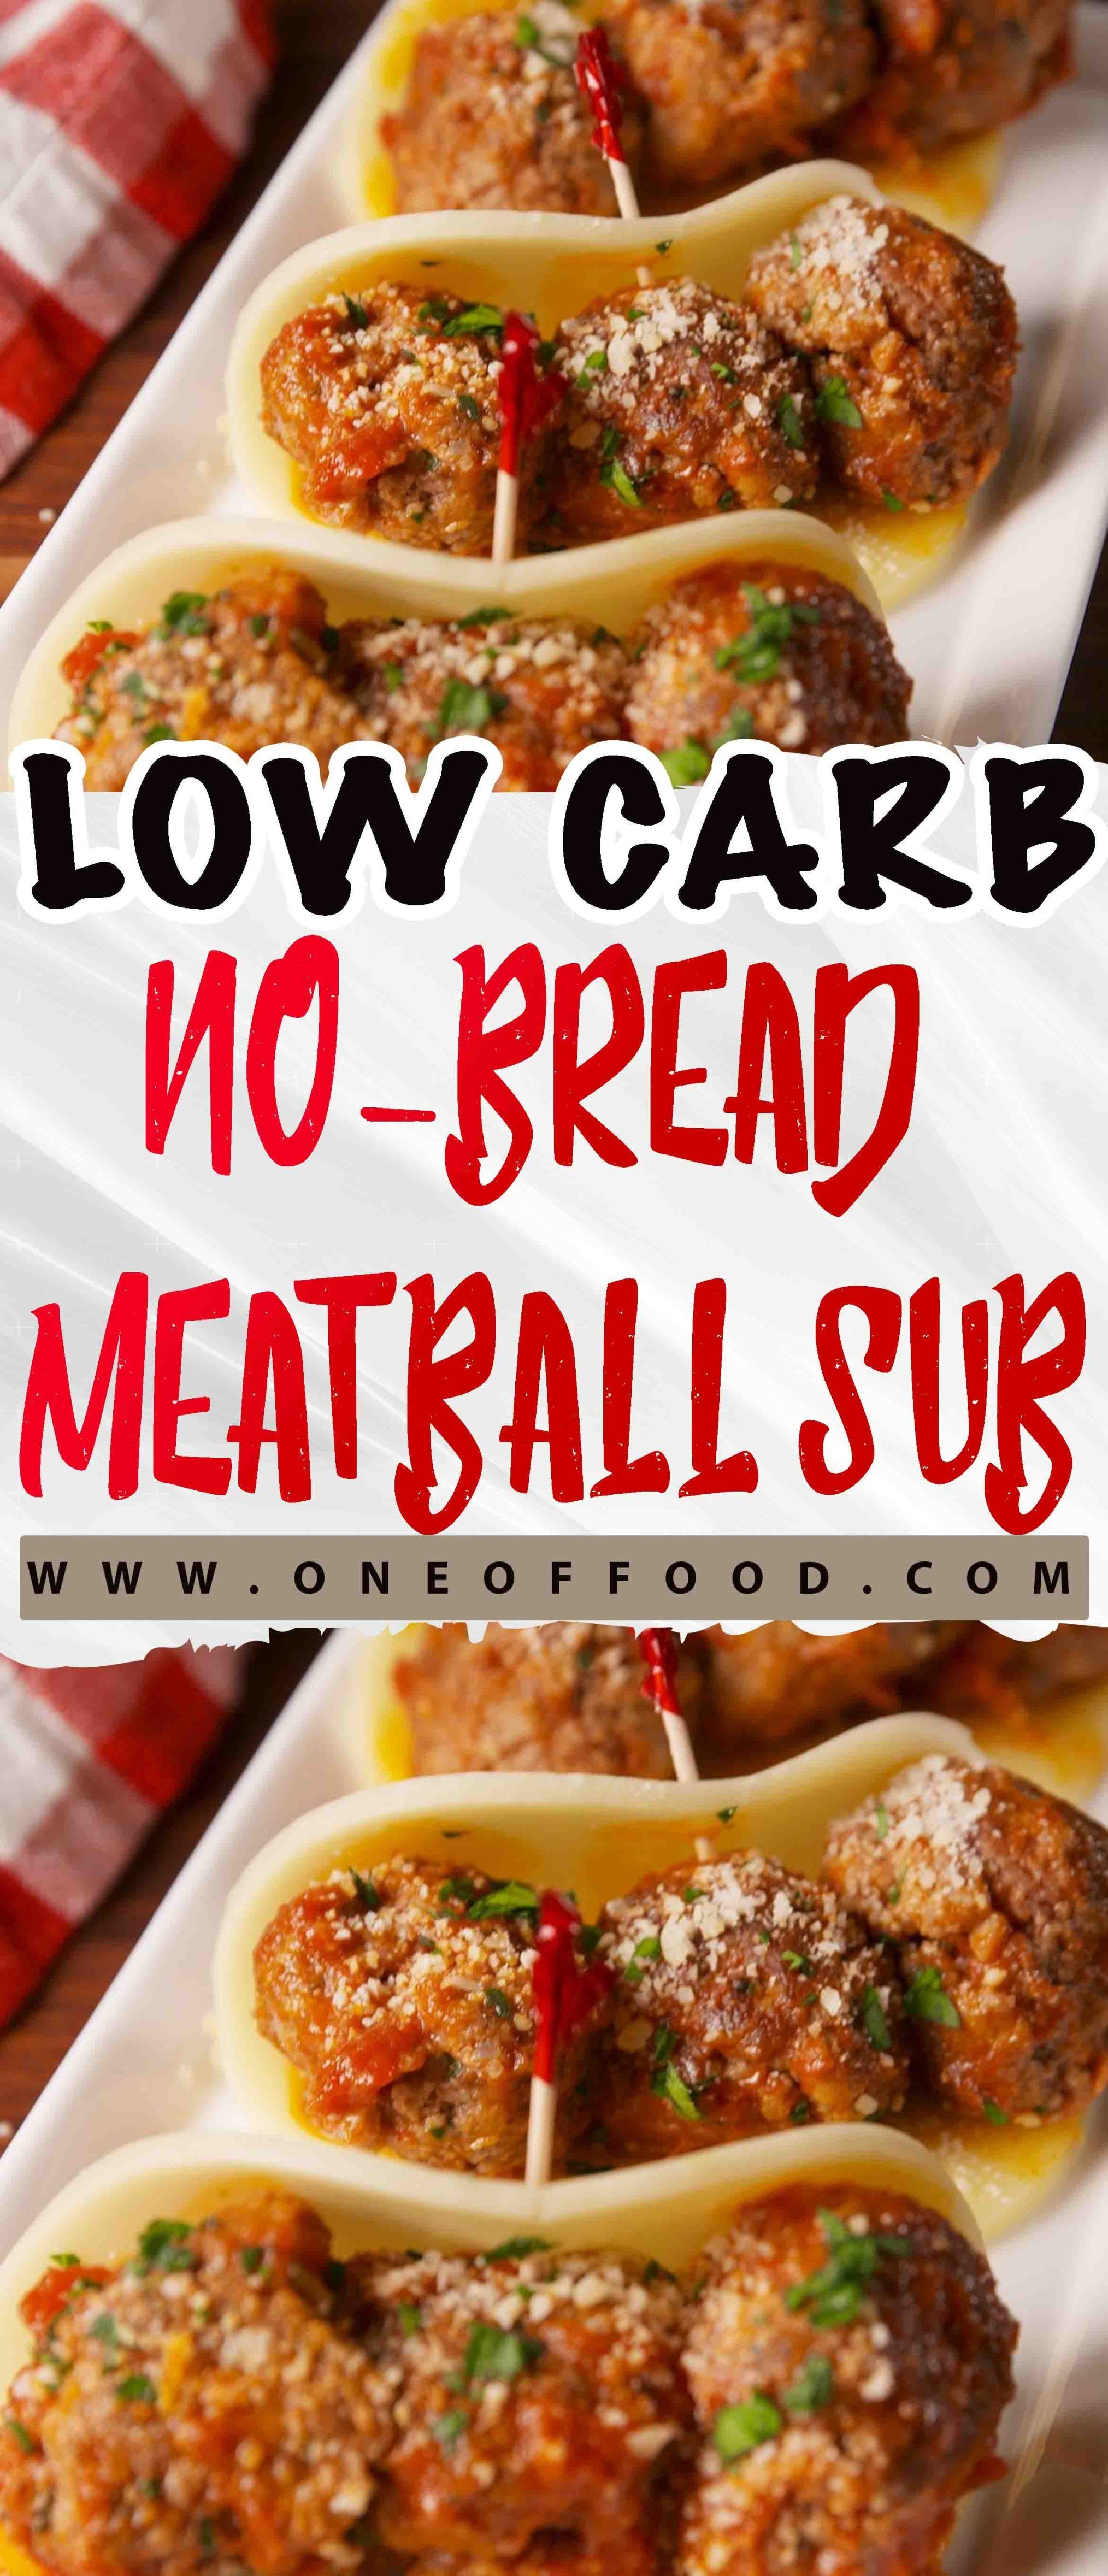 Low Carb No Bread Meatball Sub One Of Food Dinner Recipes